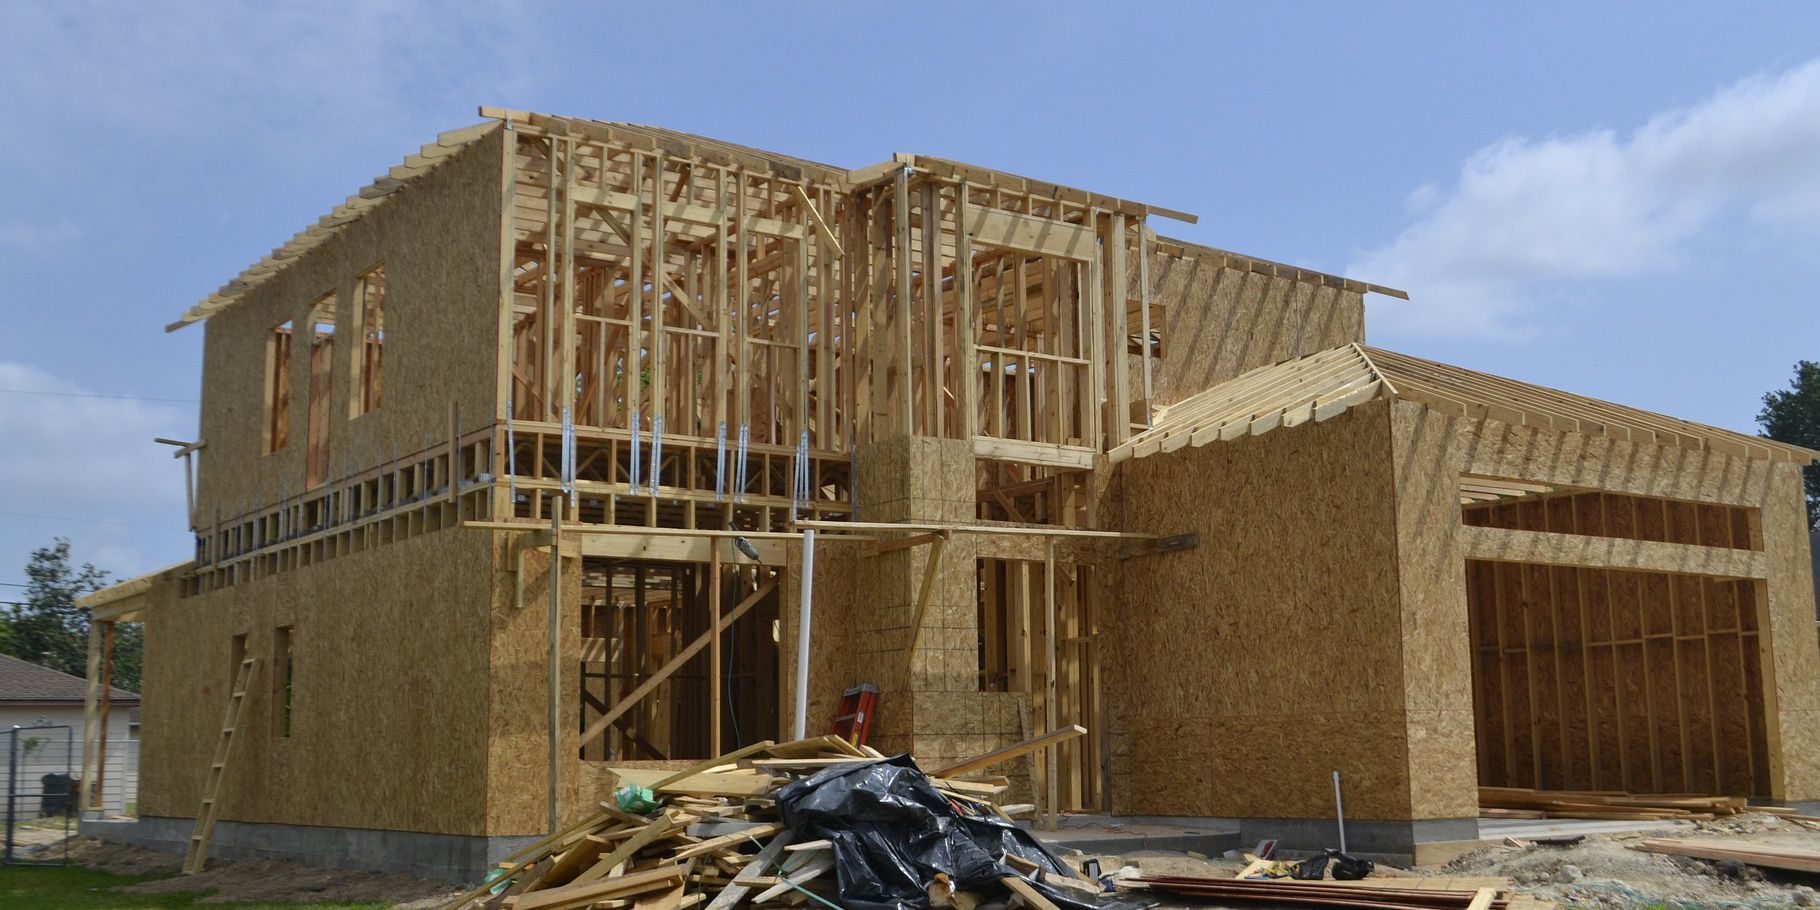 Unlicensed contractor ordered to pay $20K in restitution